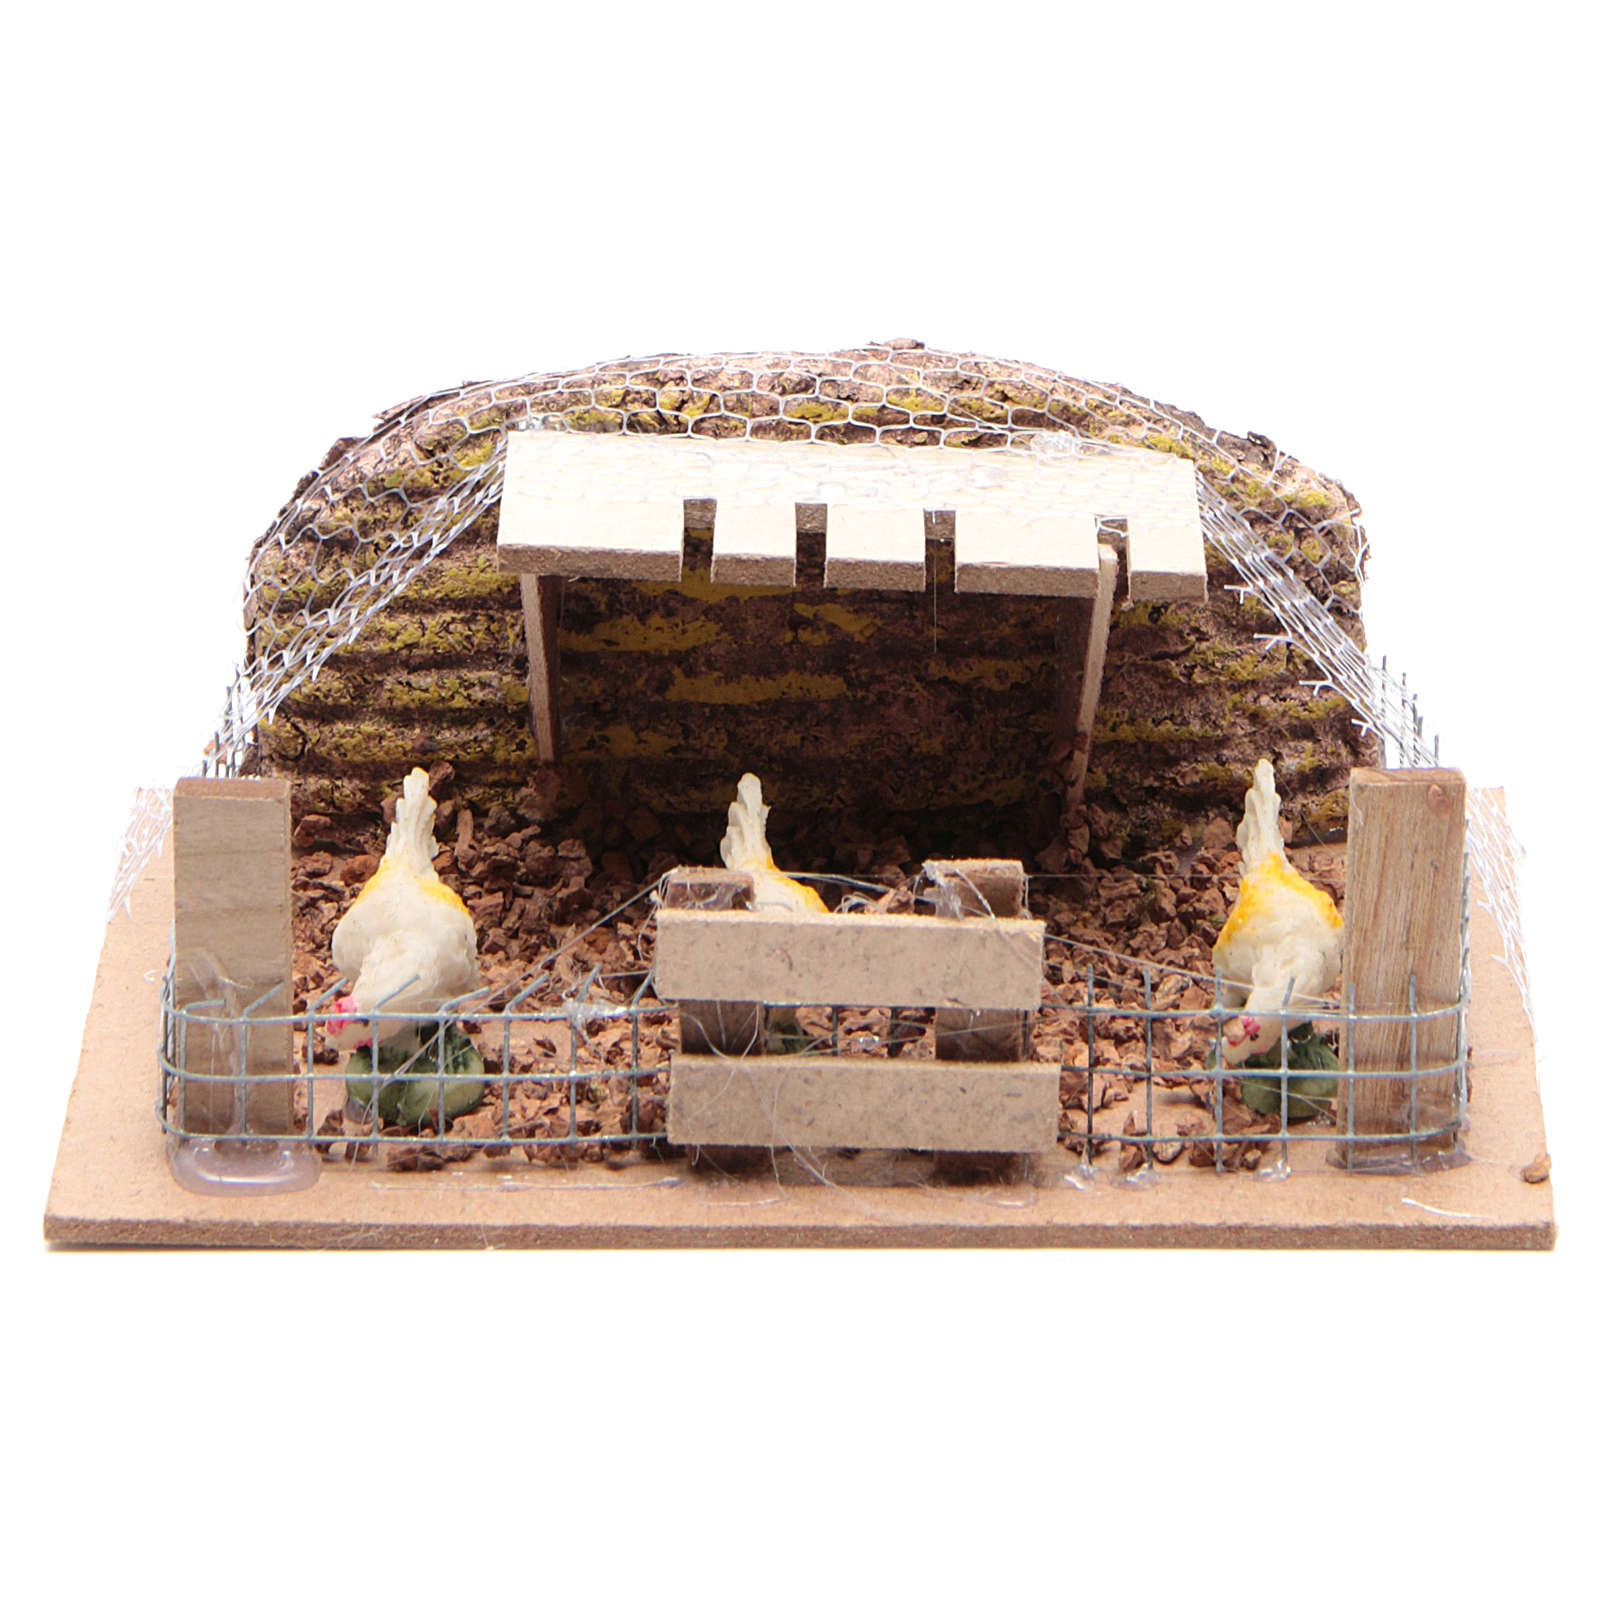 Enclosure with Hens 6x14,5x11cm for Nativity 3